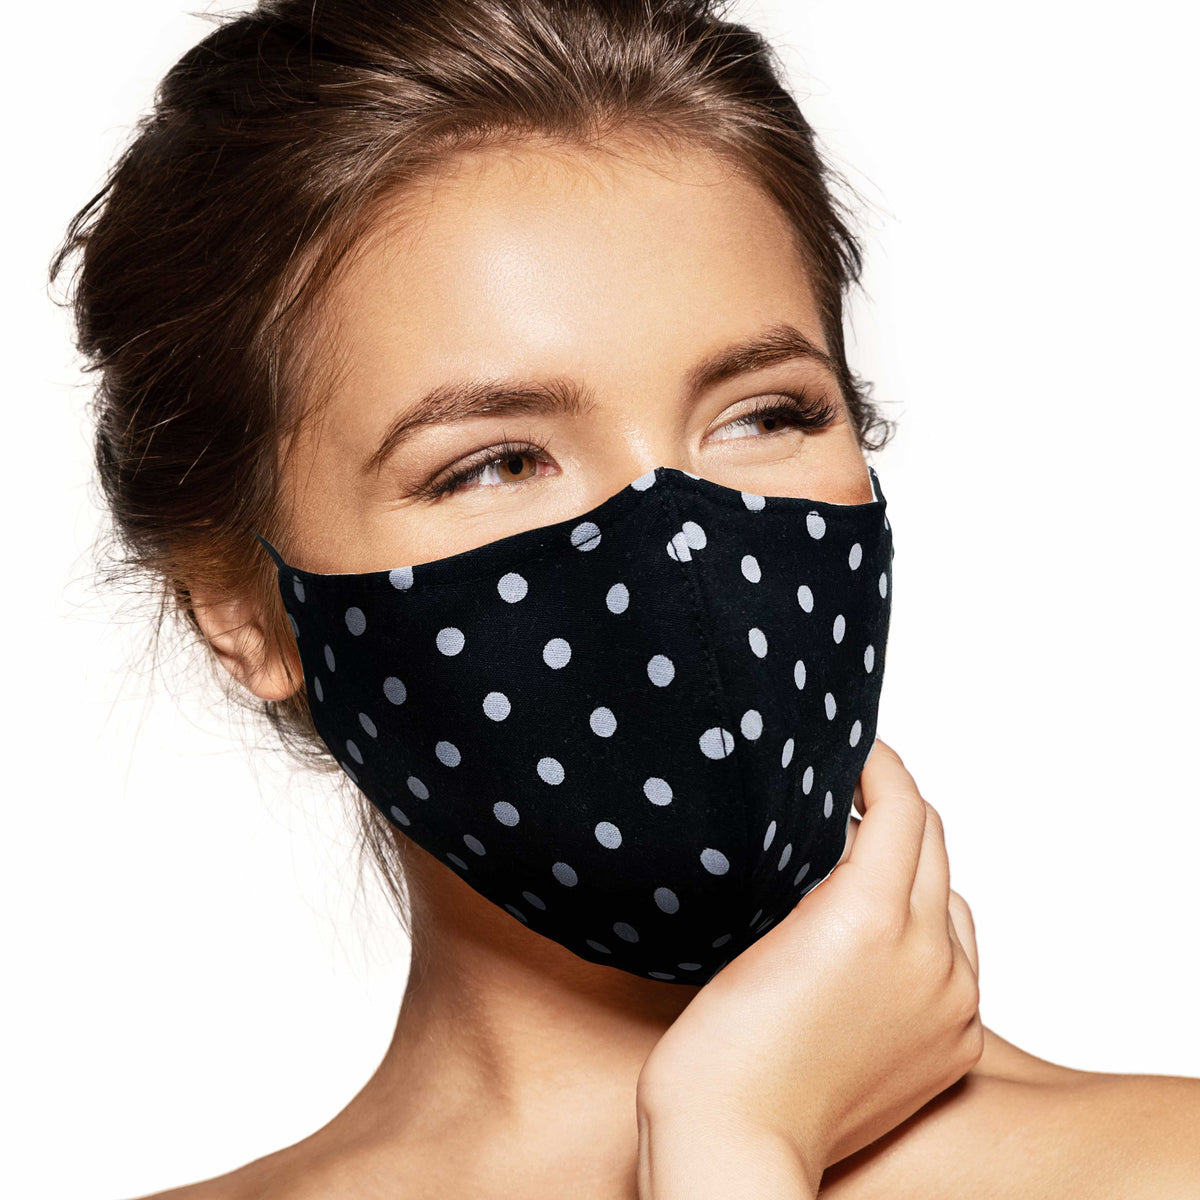 Pebbles Handmade Contoured Cotton Face Mask - Polka Dot